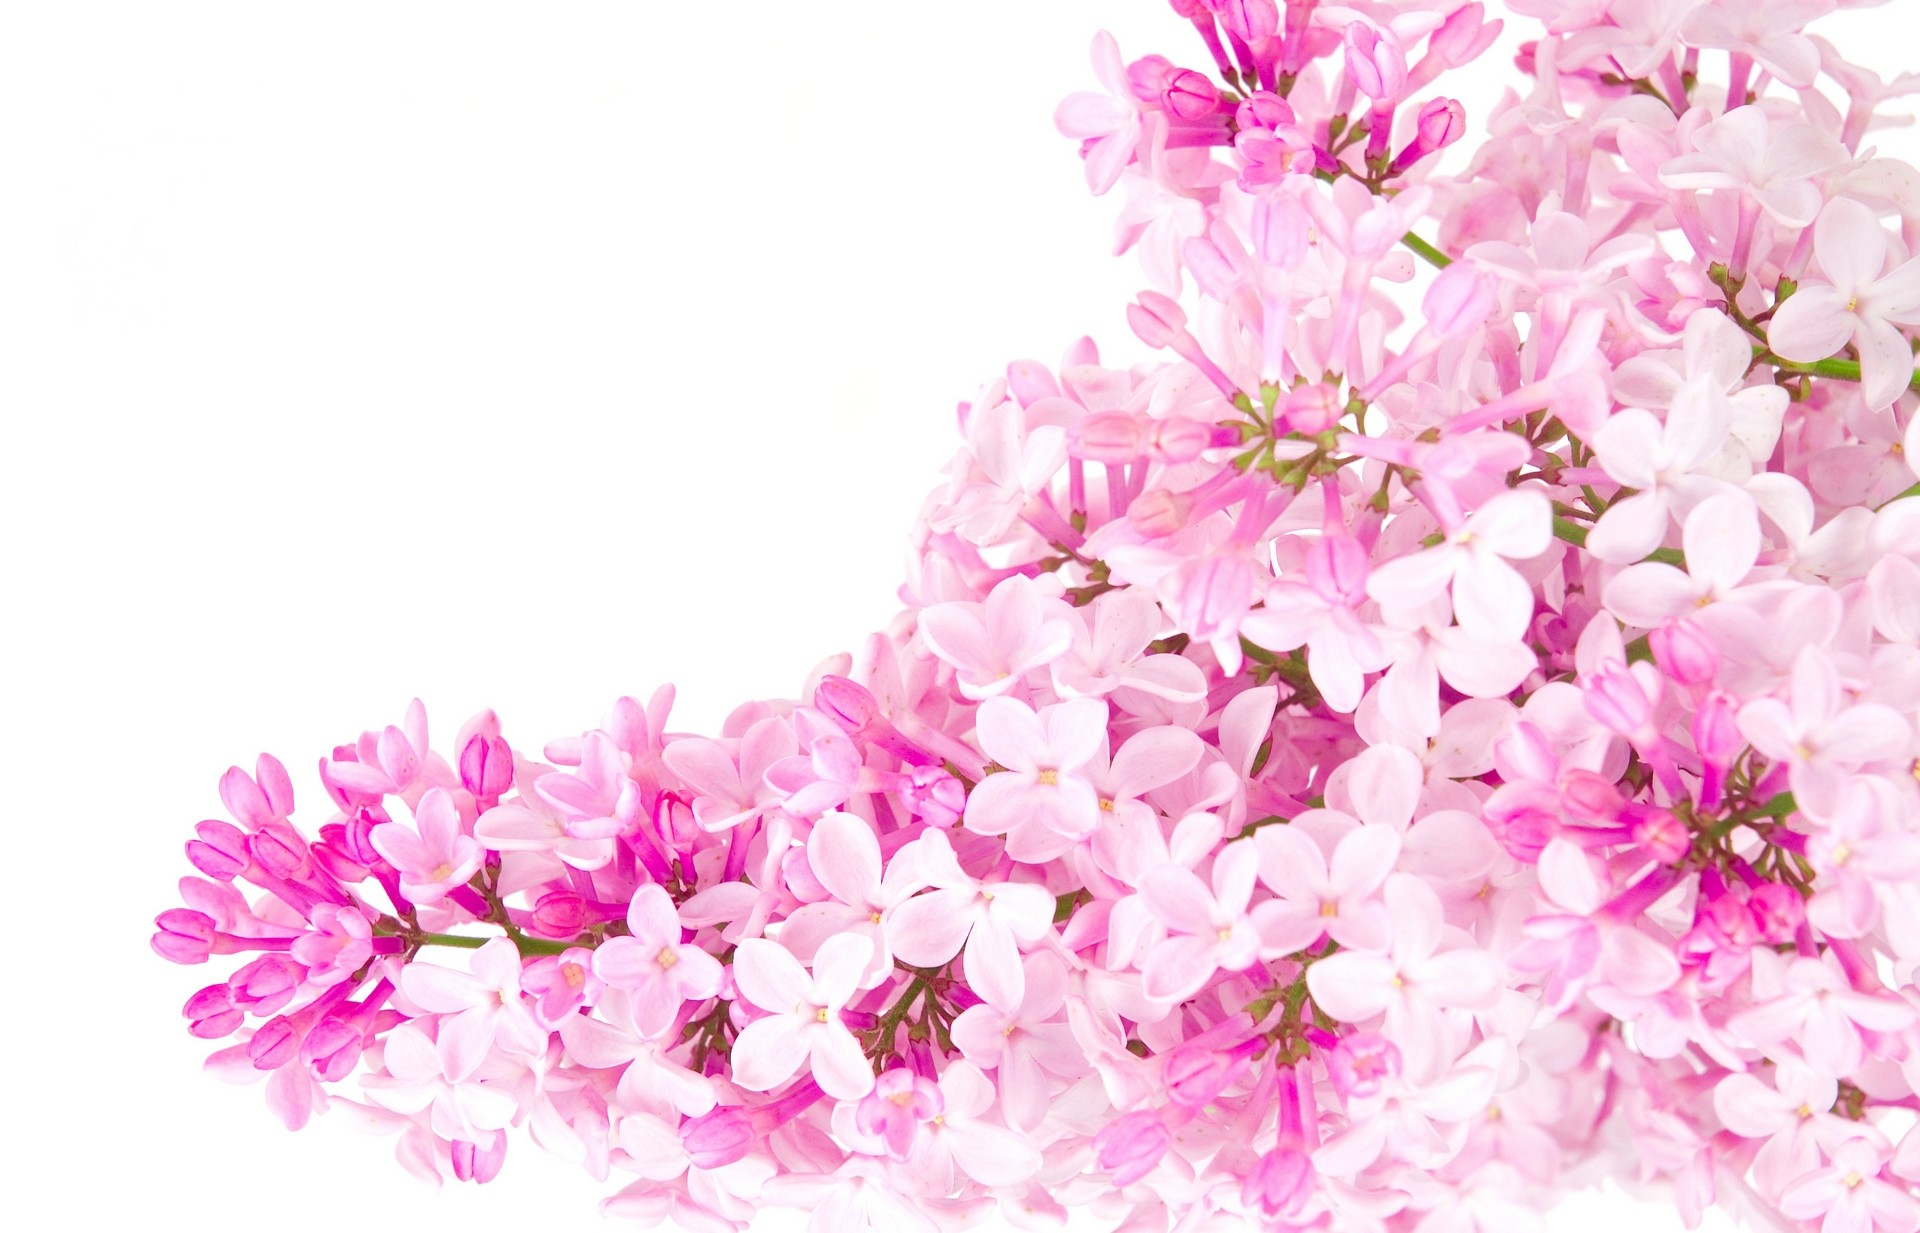 Pink Color Images Flowers Hd Wallpaper And Background Photos